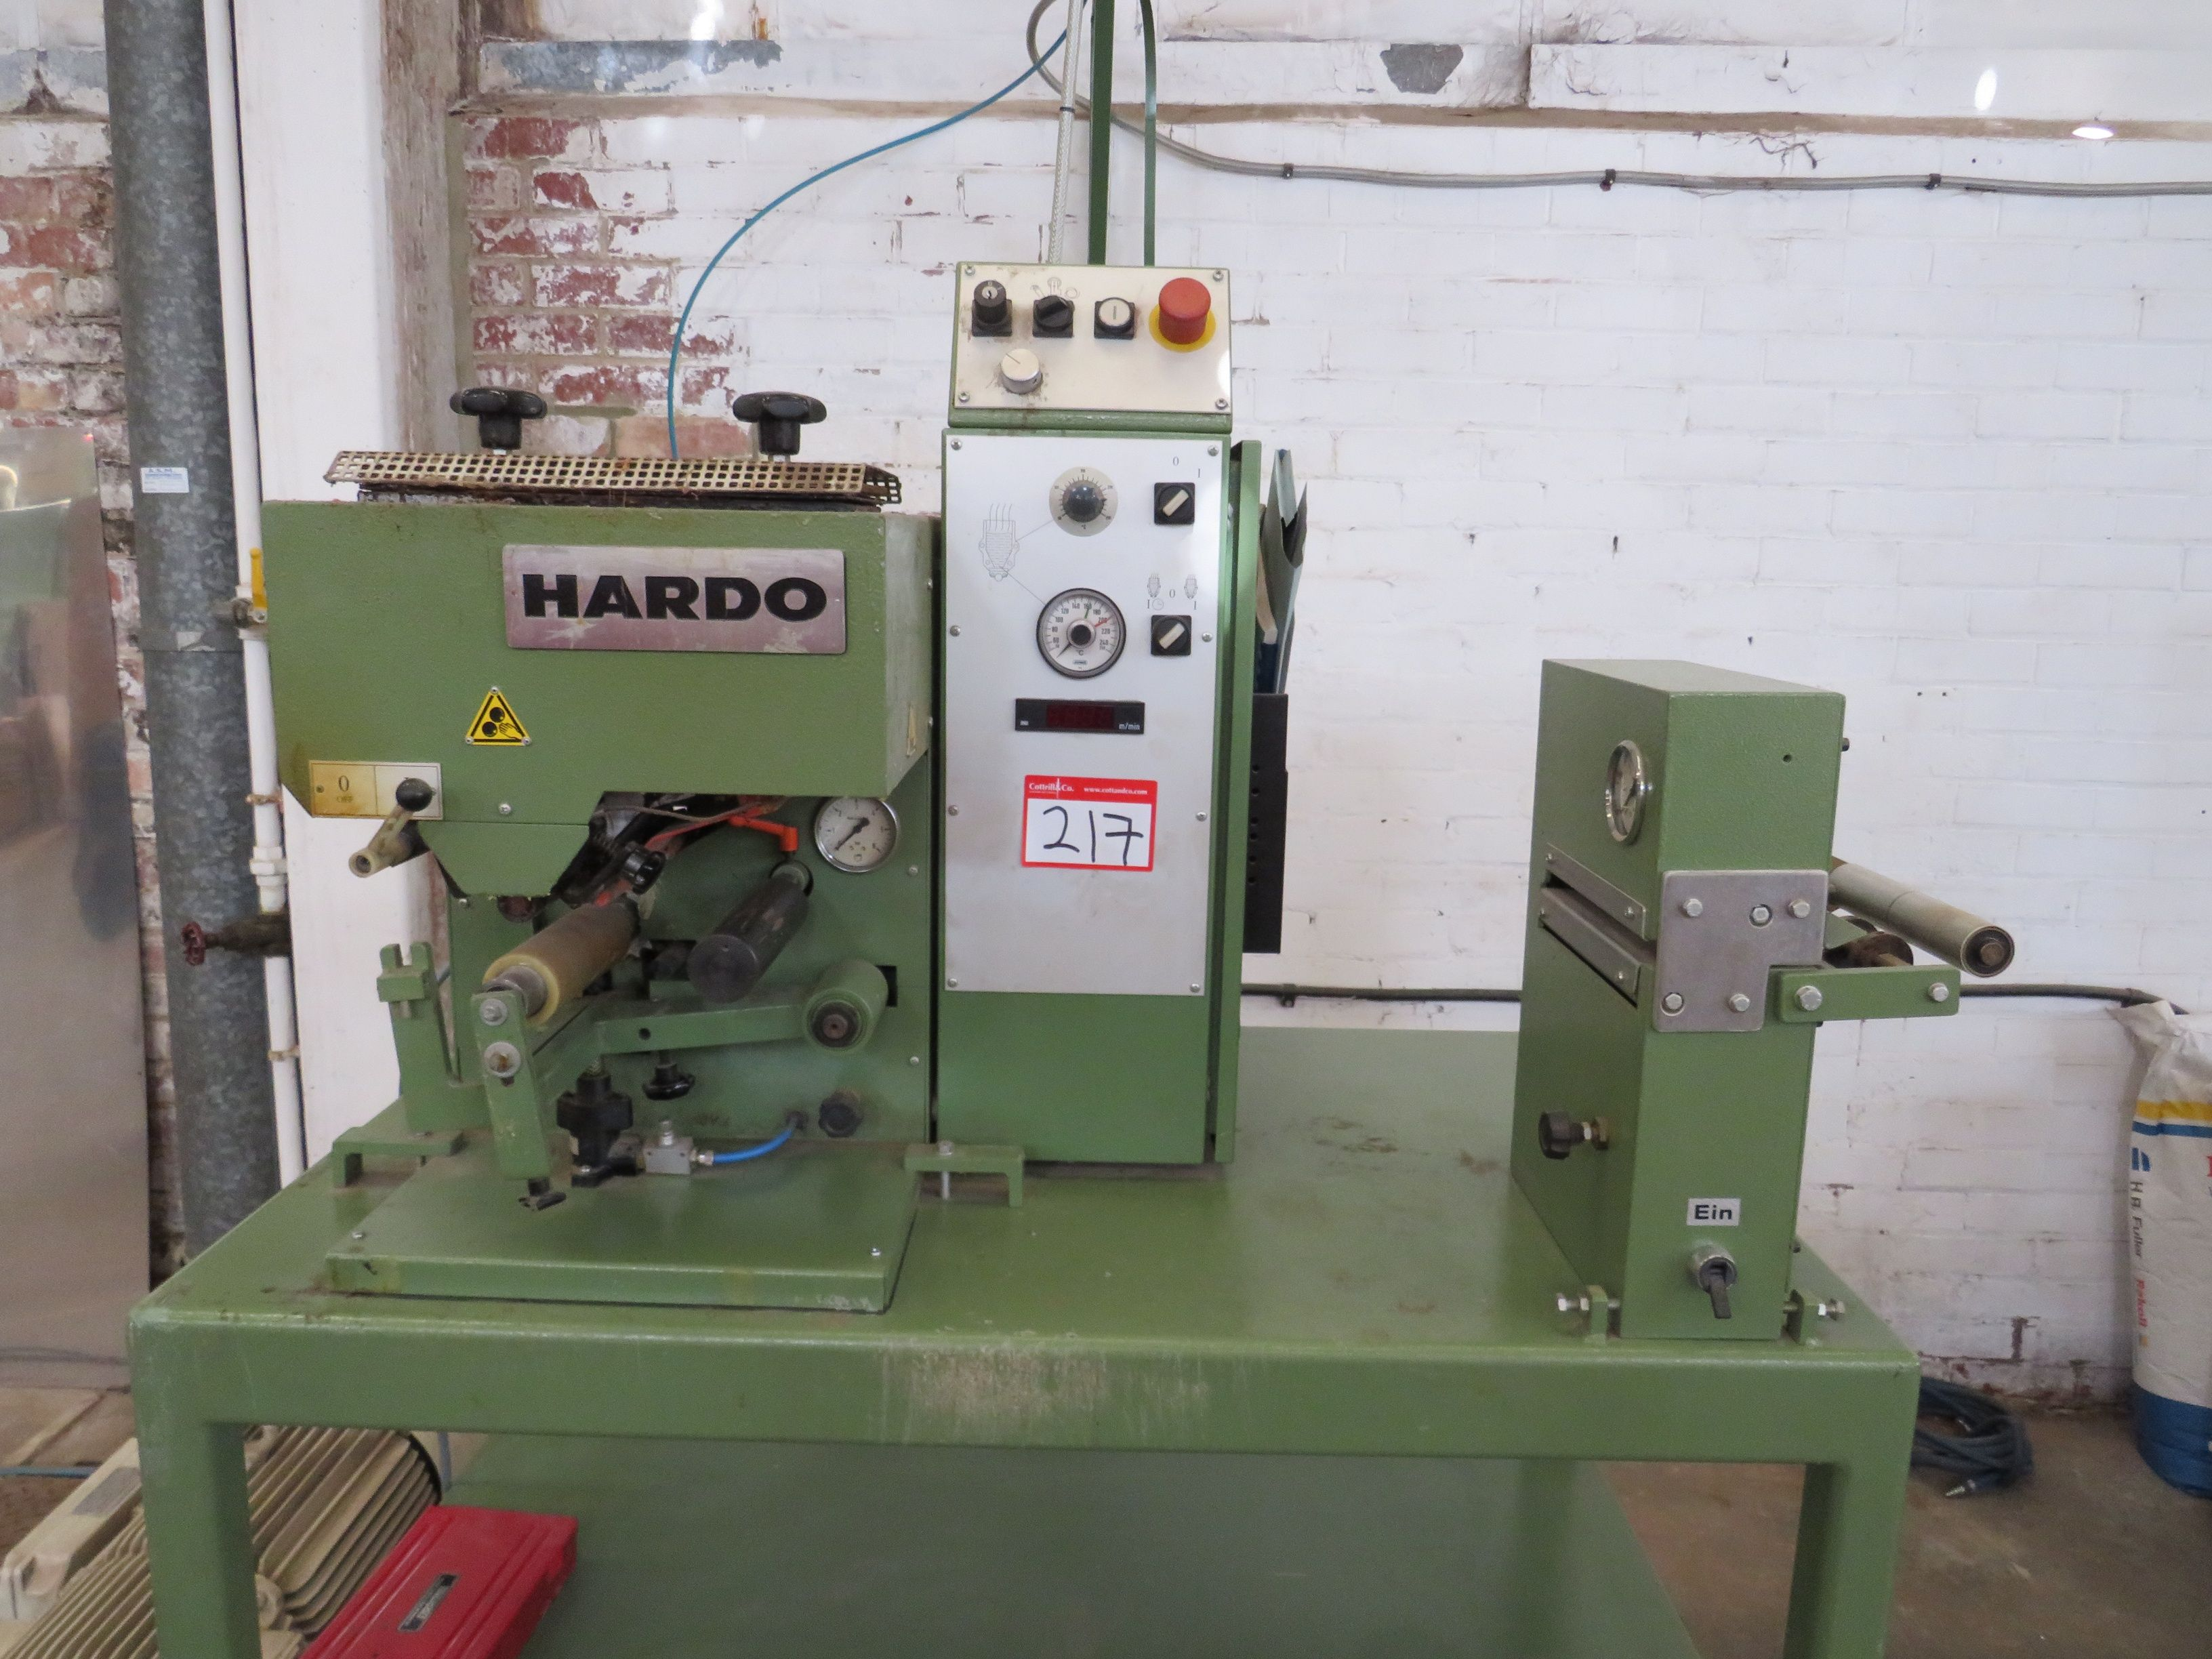 Hardo TH150 Hotmelt-Anwendung